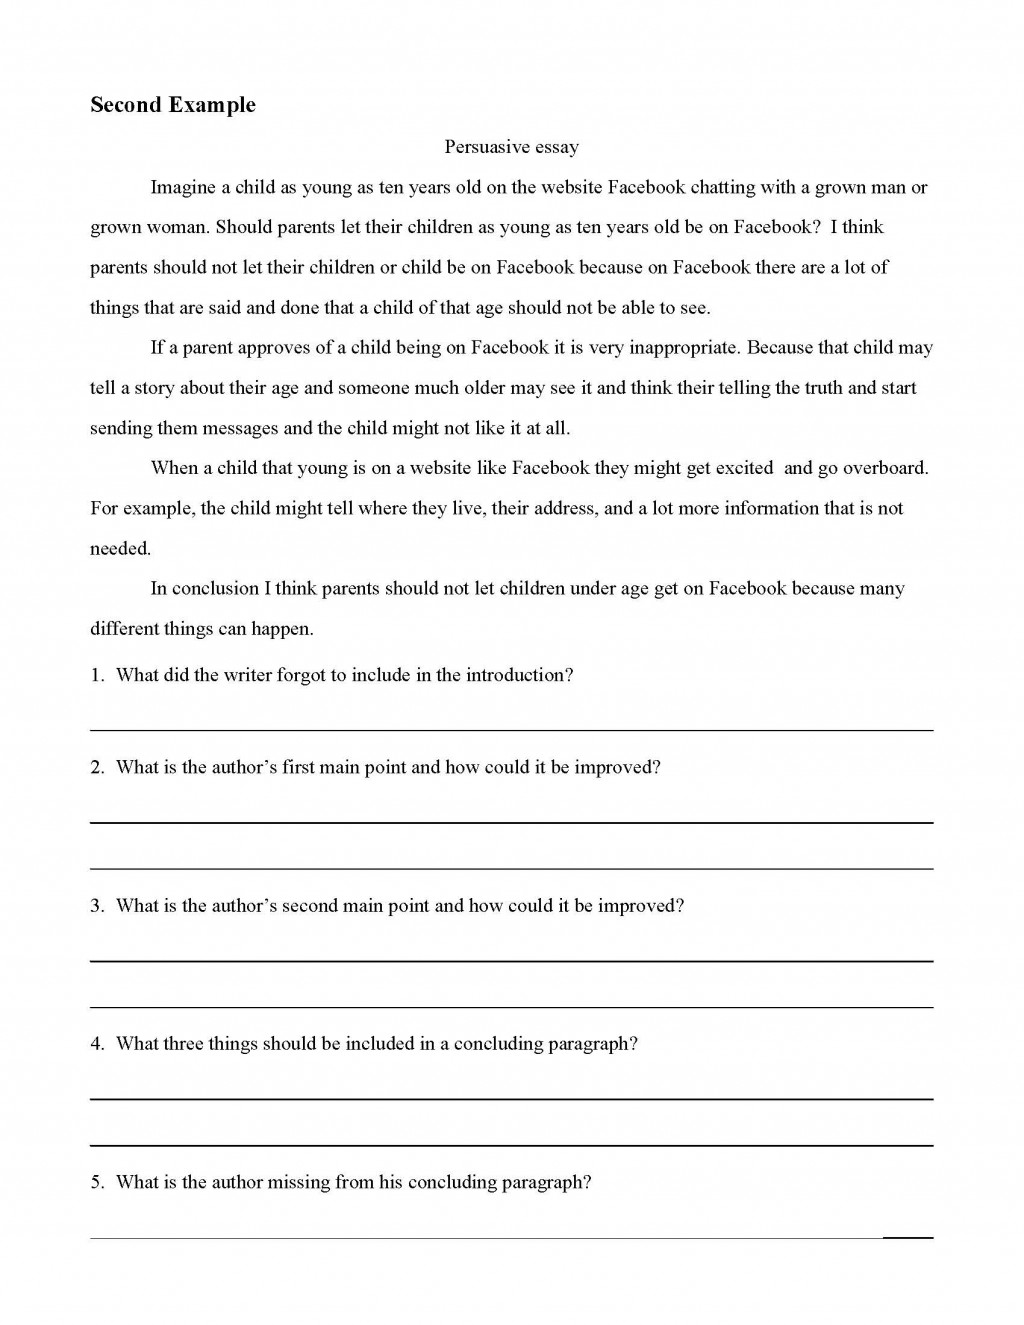 010 Persuasive Essays Of Excellent Examples 5th Grade Written By Graders Example Argumentative-persuasive Essay Topics Large